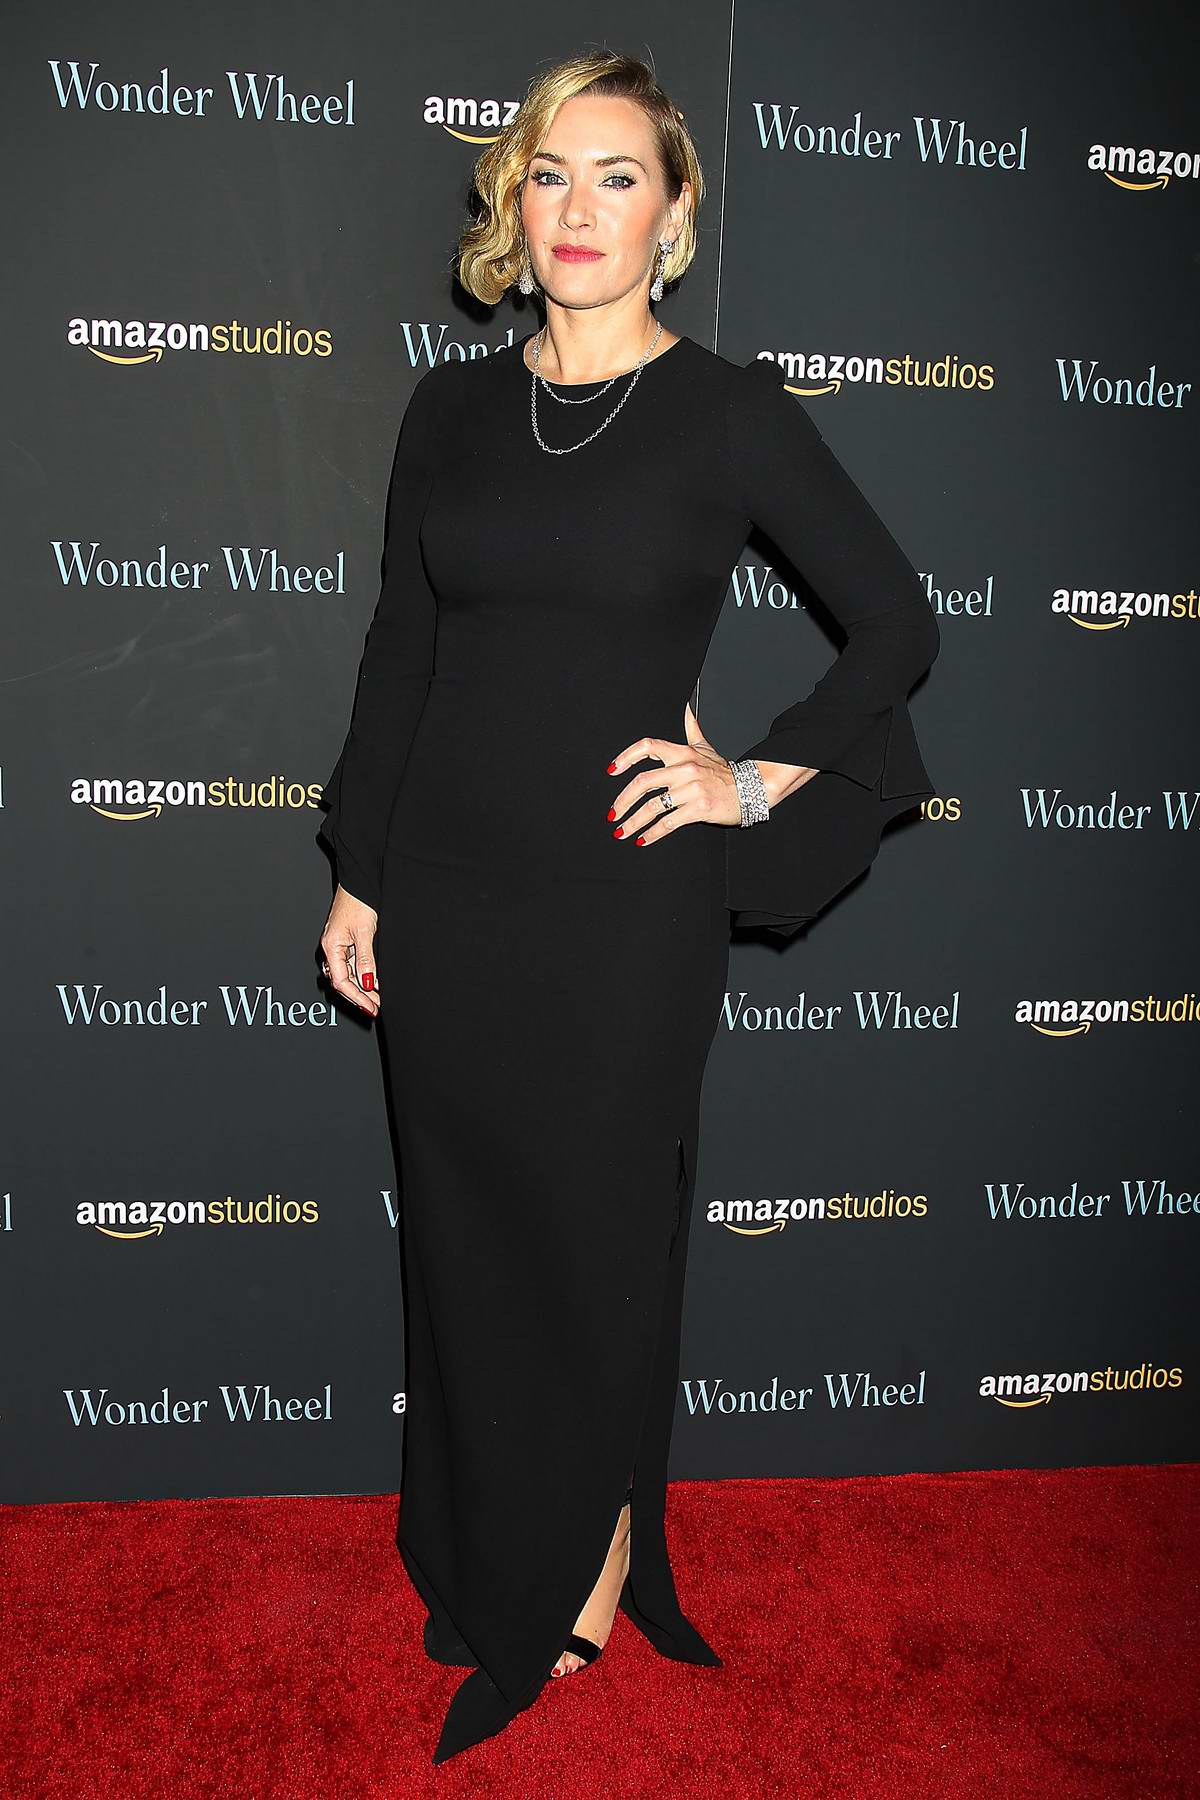 Kate Winslet at the 'Wonder Wheel' screening in New York City